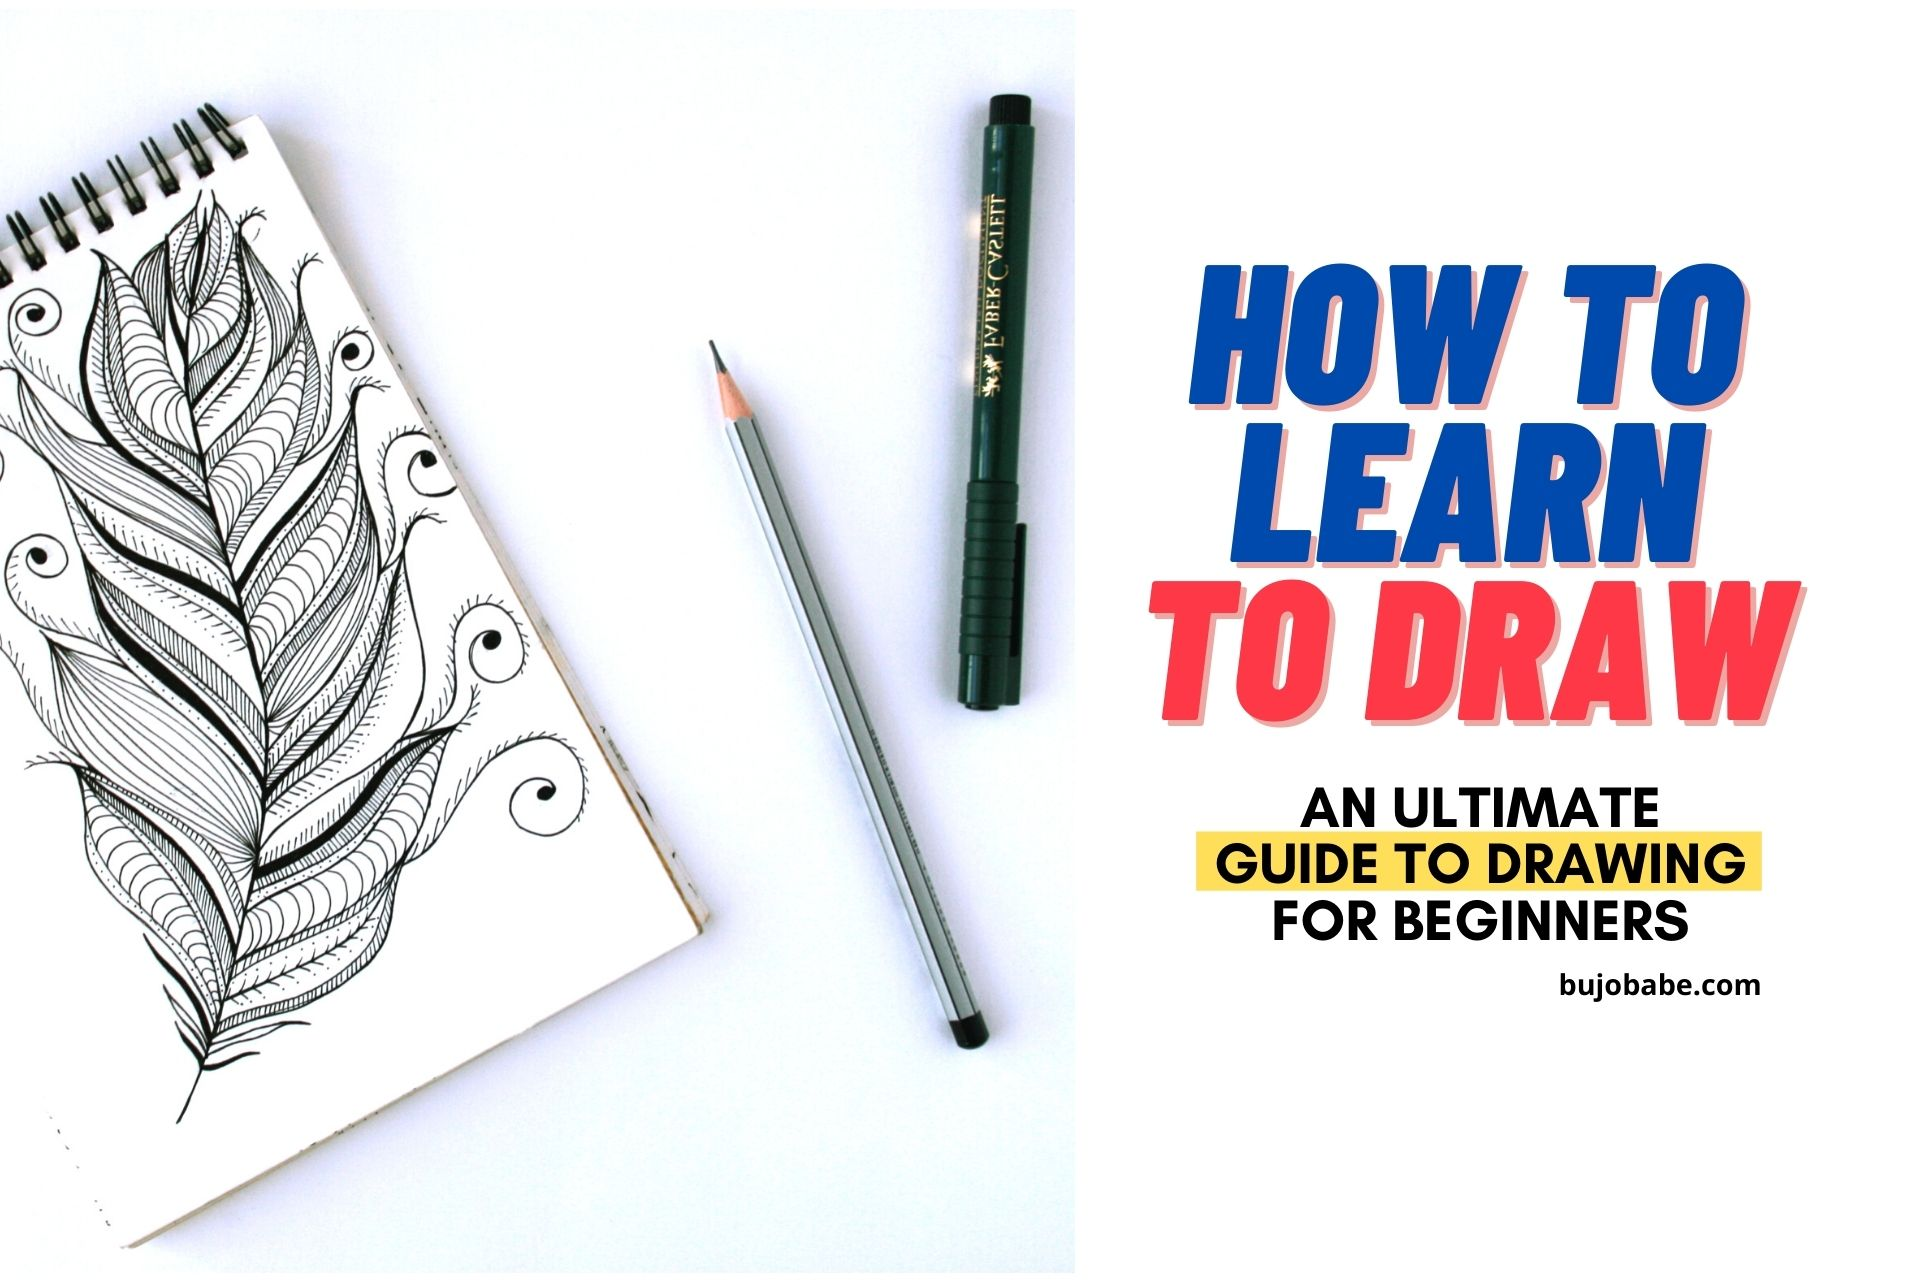 how to learn to draw, learning to draw, drawing guide